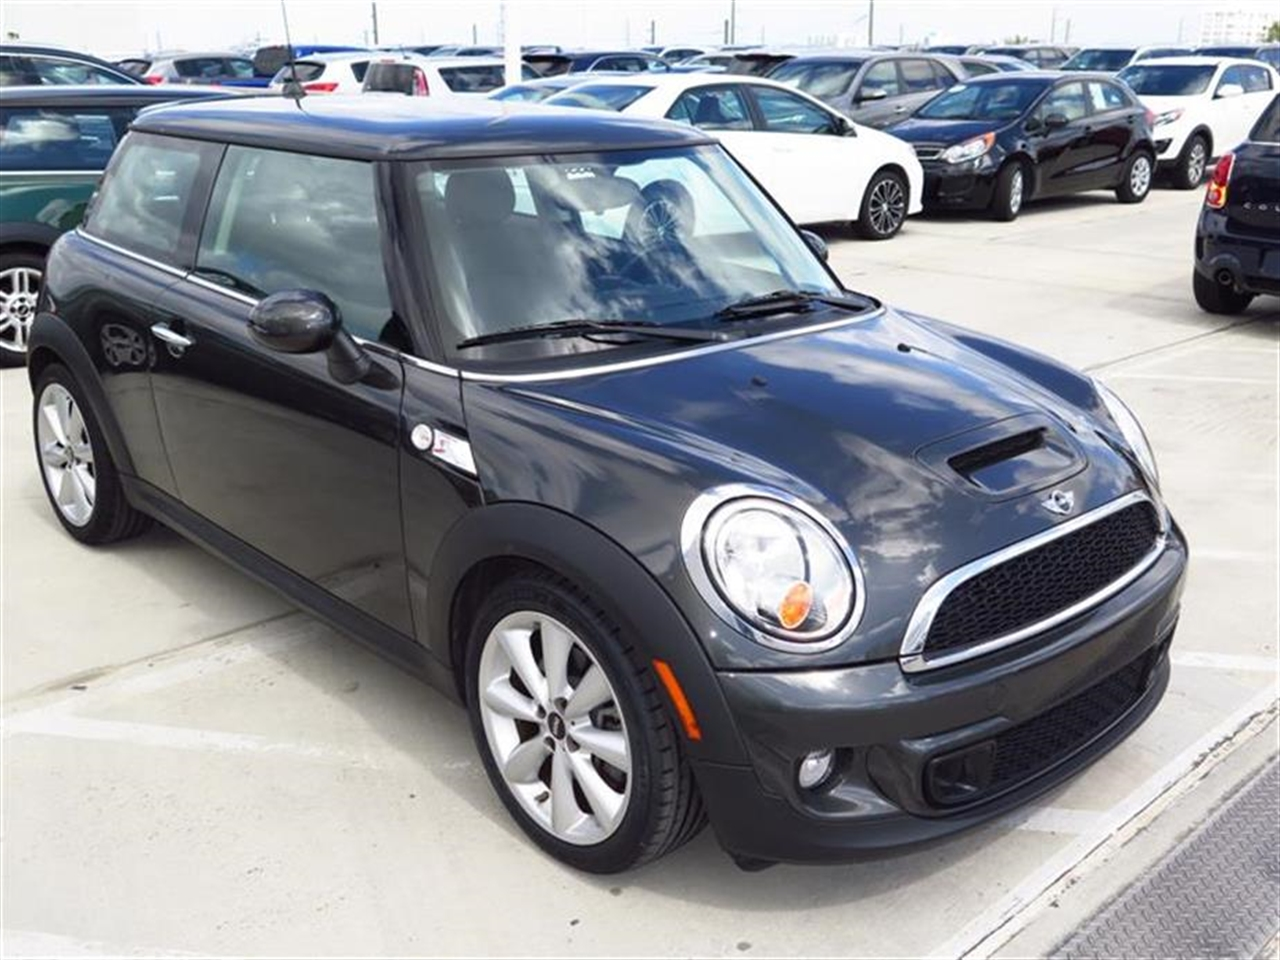 2012 MINI COOPER HARDTOP 2dr Cpe S 19141 miles 1 rear cup holder 12V auxiliary pwr outlet in c